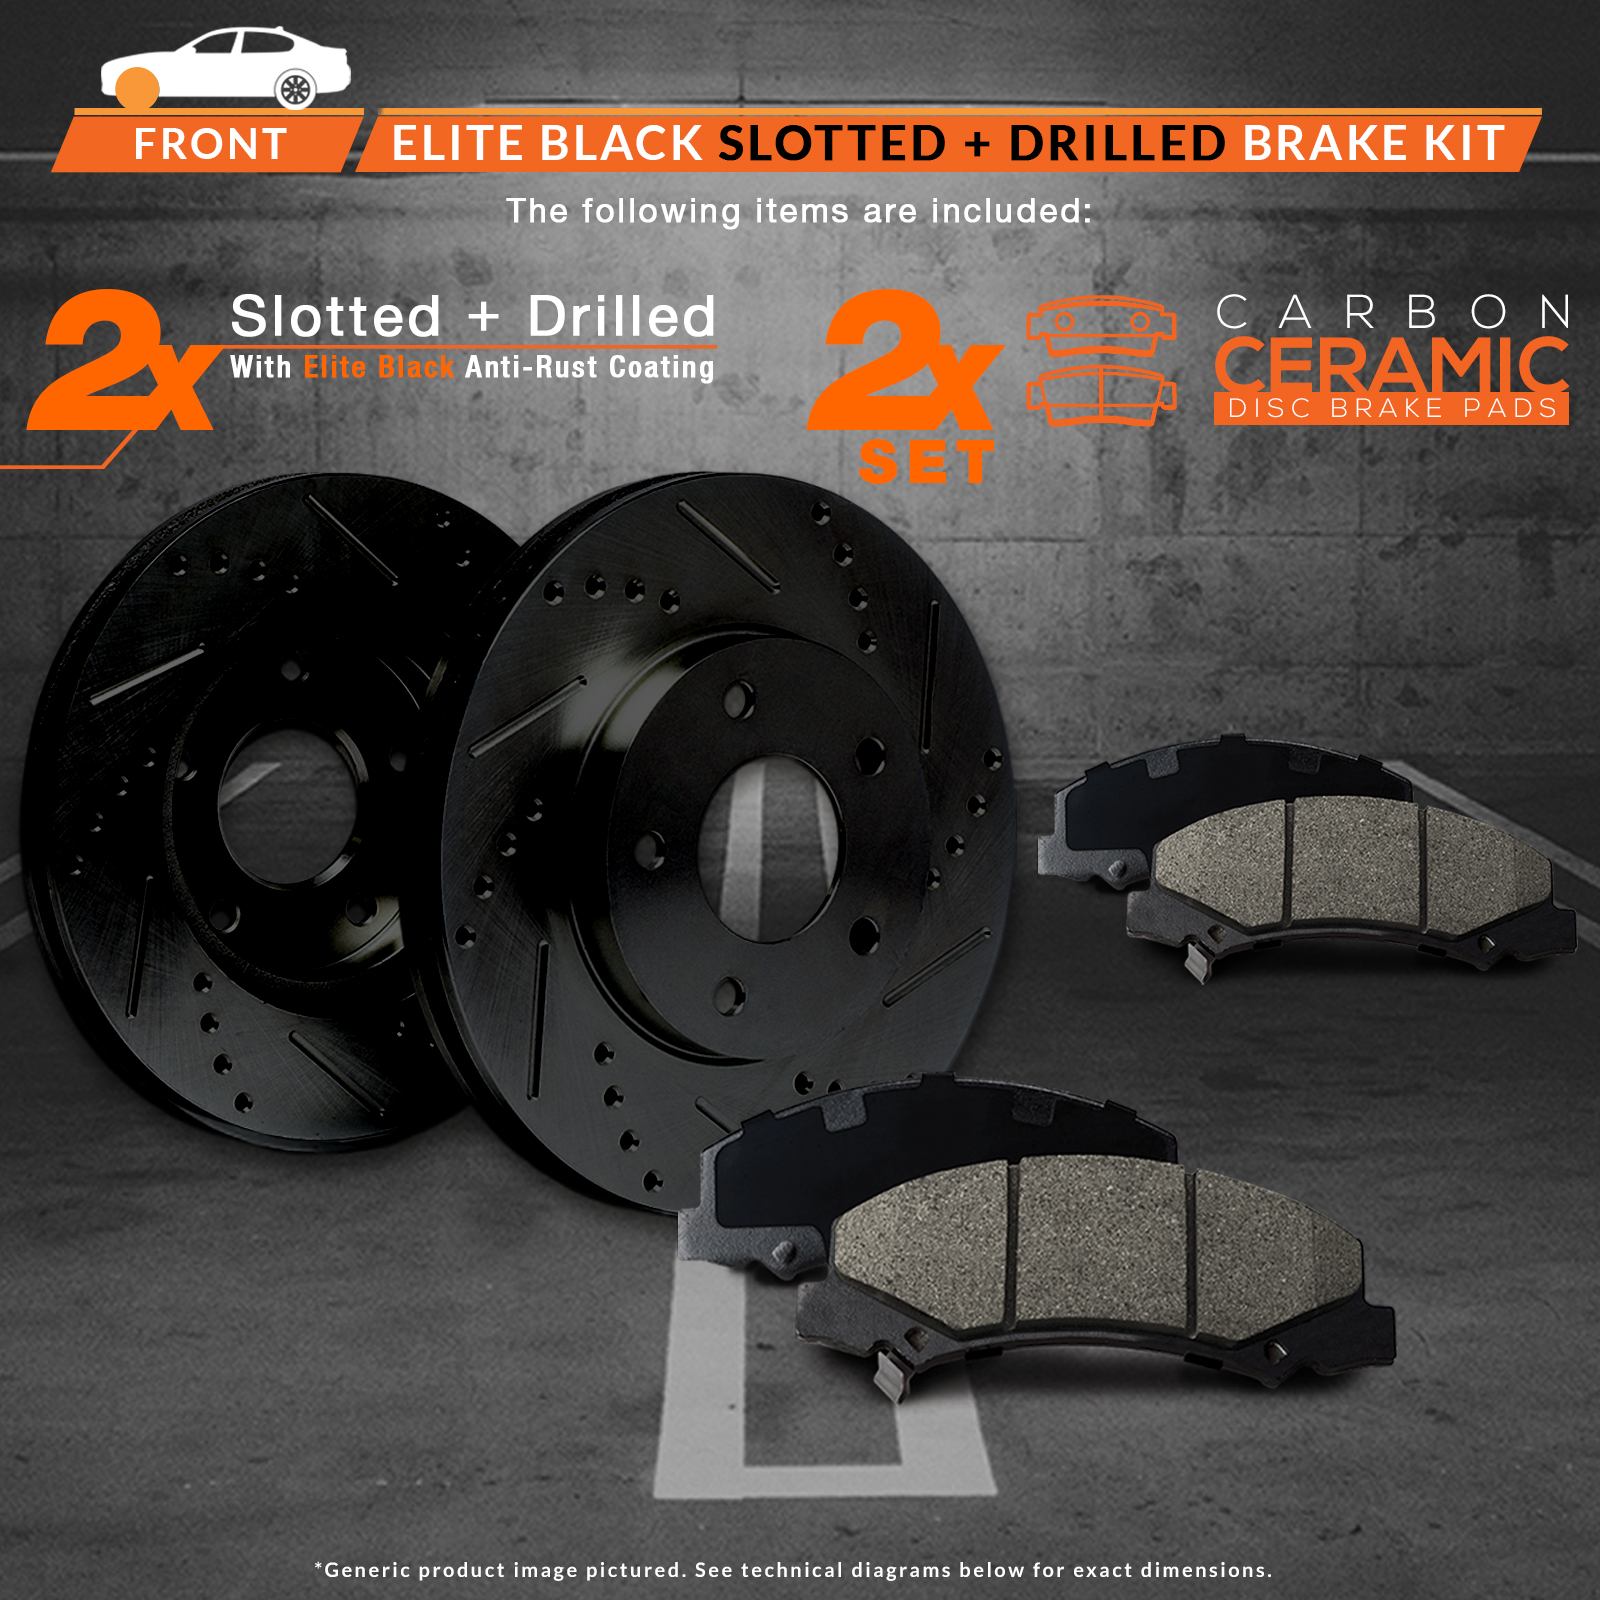 medium resolution of max brakes front elite brake kit e coated slotted drilled rotors ceramic pads kt002181 fits 1996 96 1997 97 1998 98 1999 99 plymouth breeze